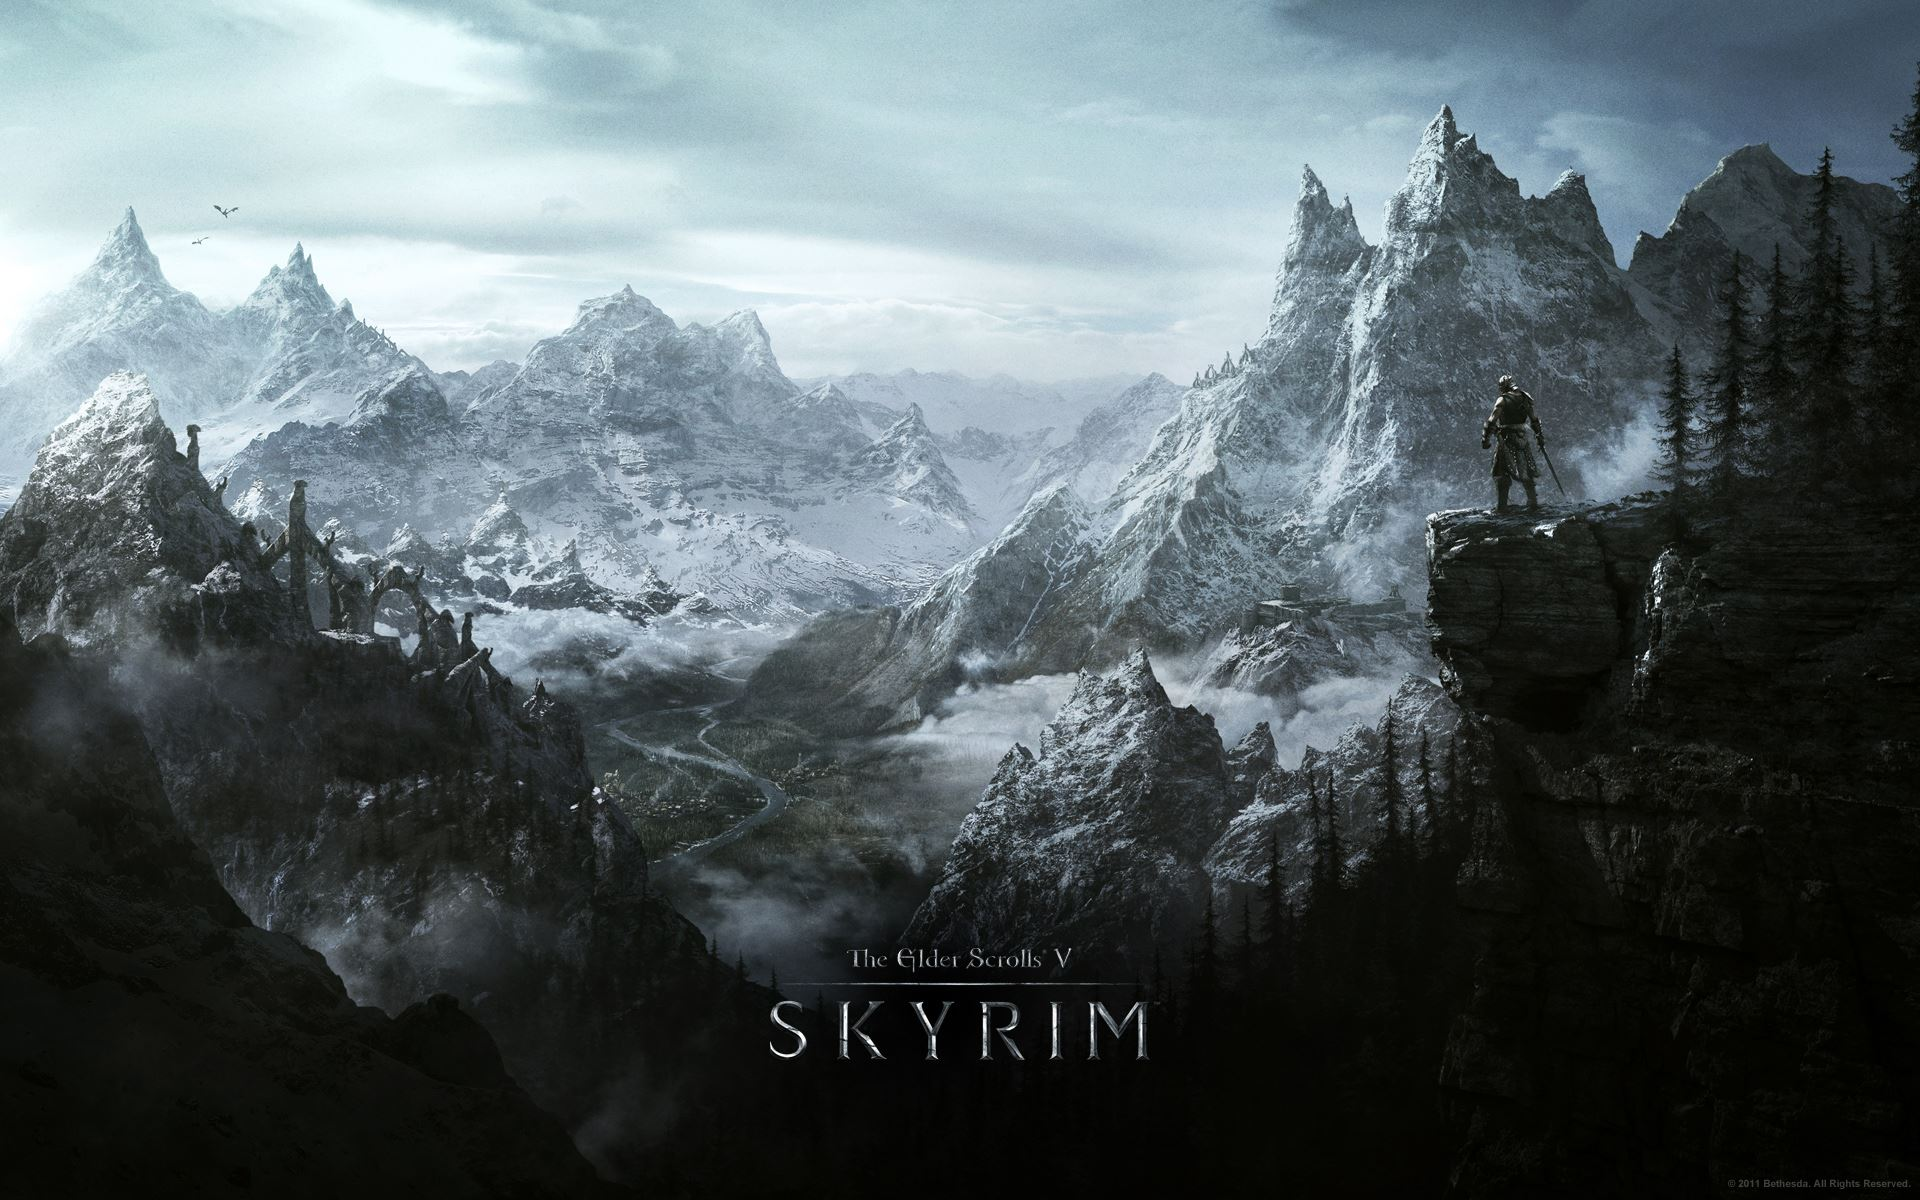 Skyrim MODS, Hacks, Cheat Codes to Spawn Dragons, Become